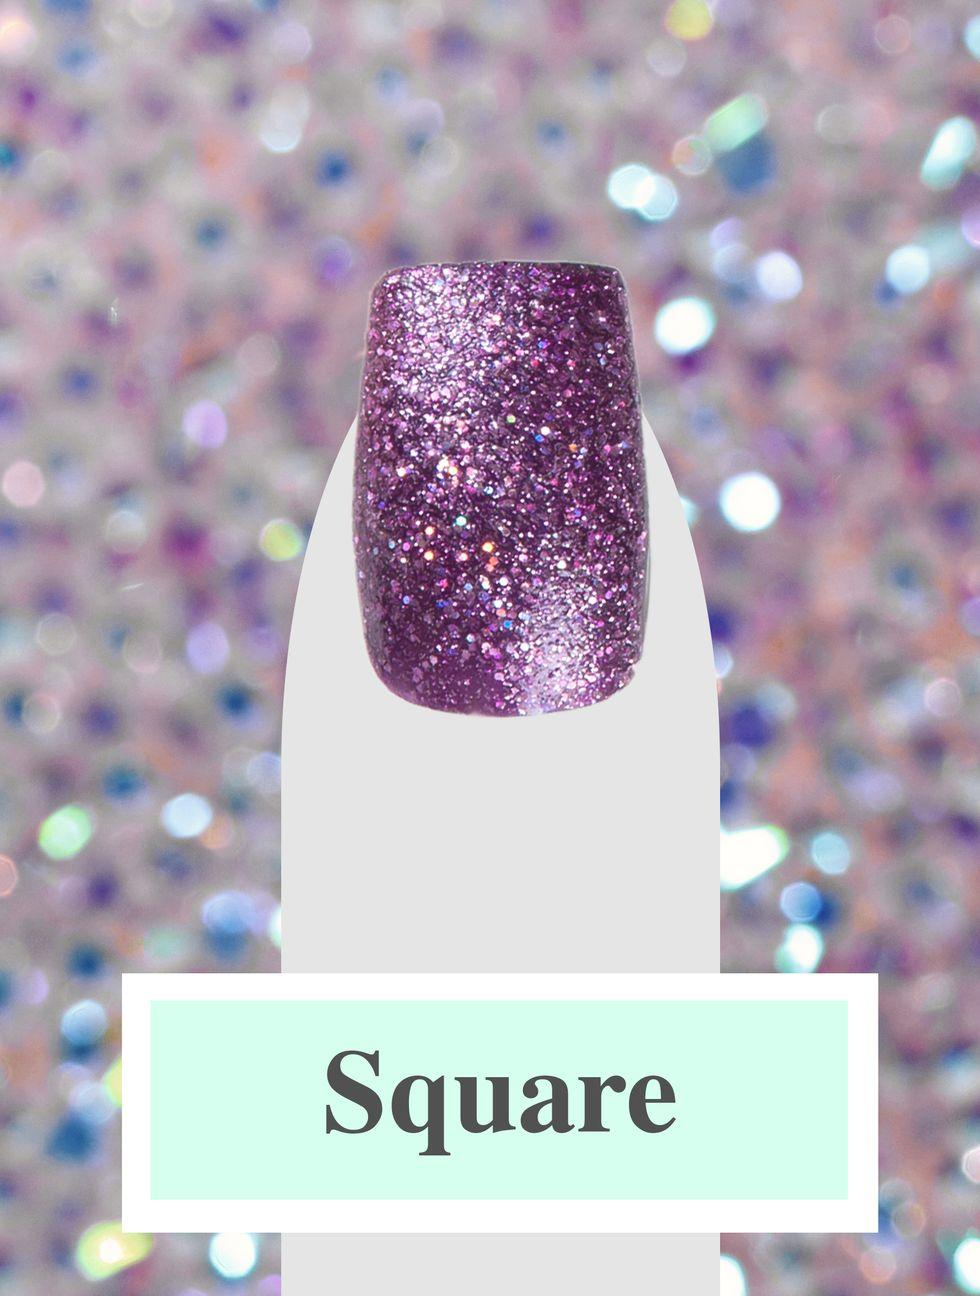 Nails, Nail Shapes, 2019, Stiletto, Oval, Coffin Nails, Square, Nail Trends